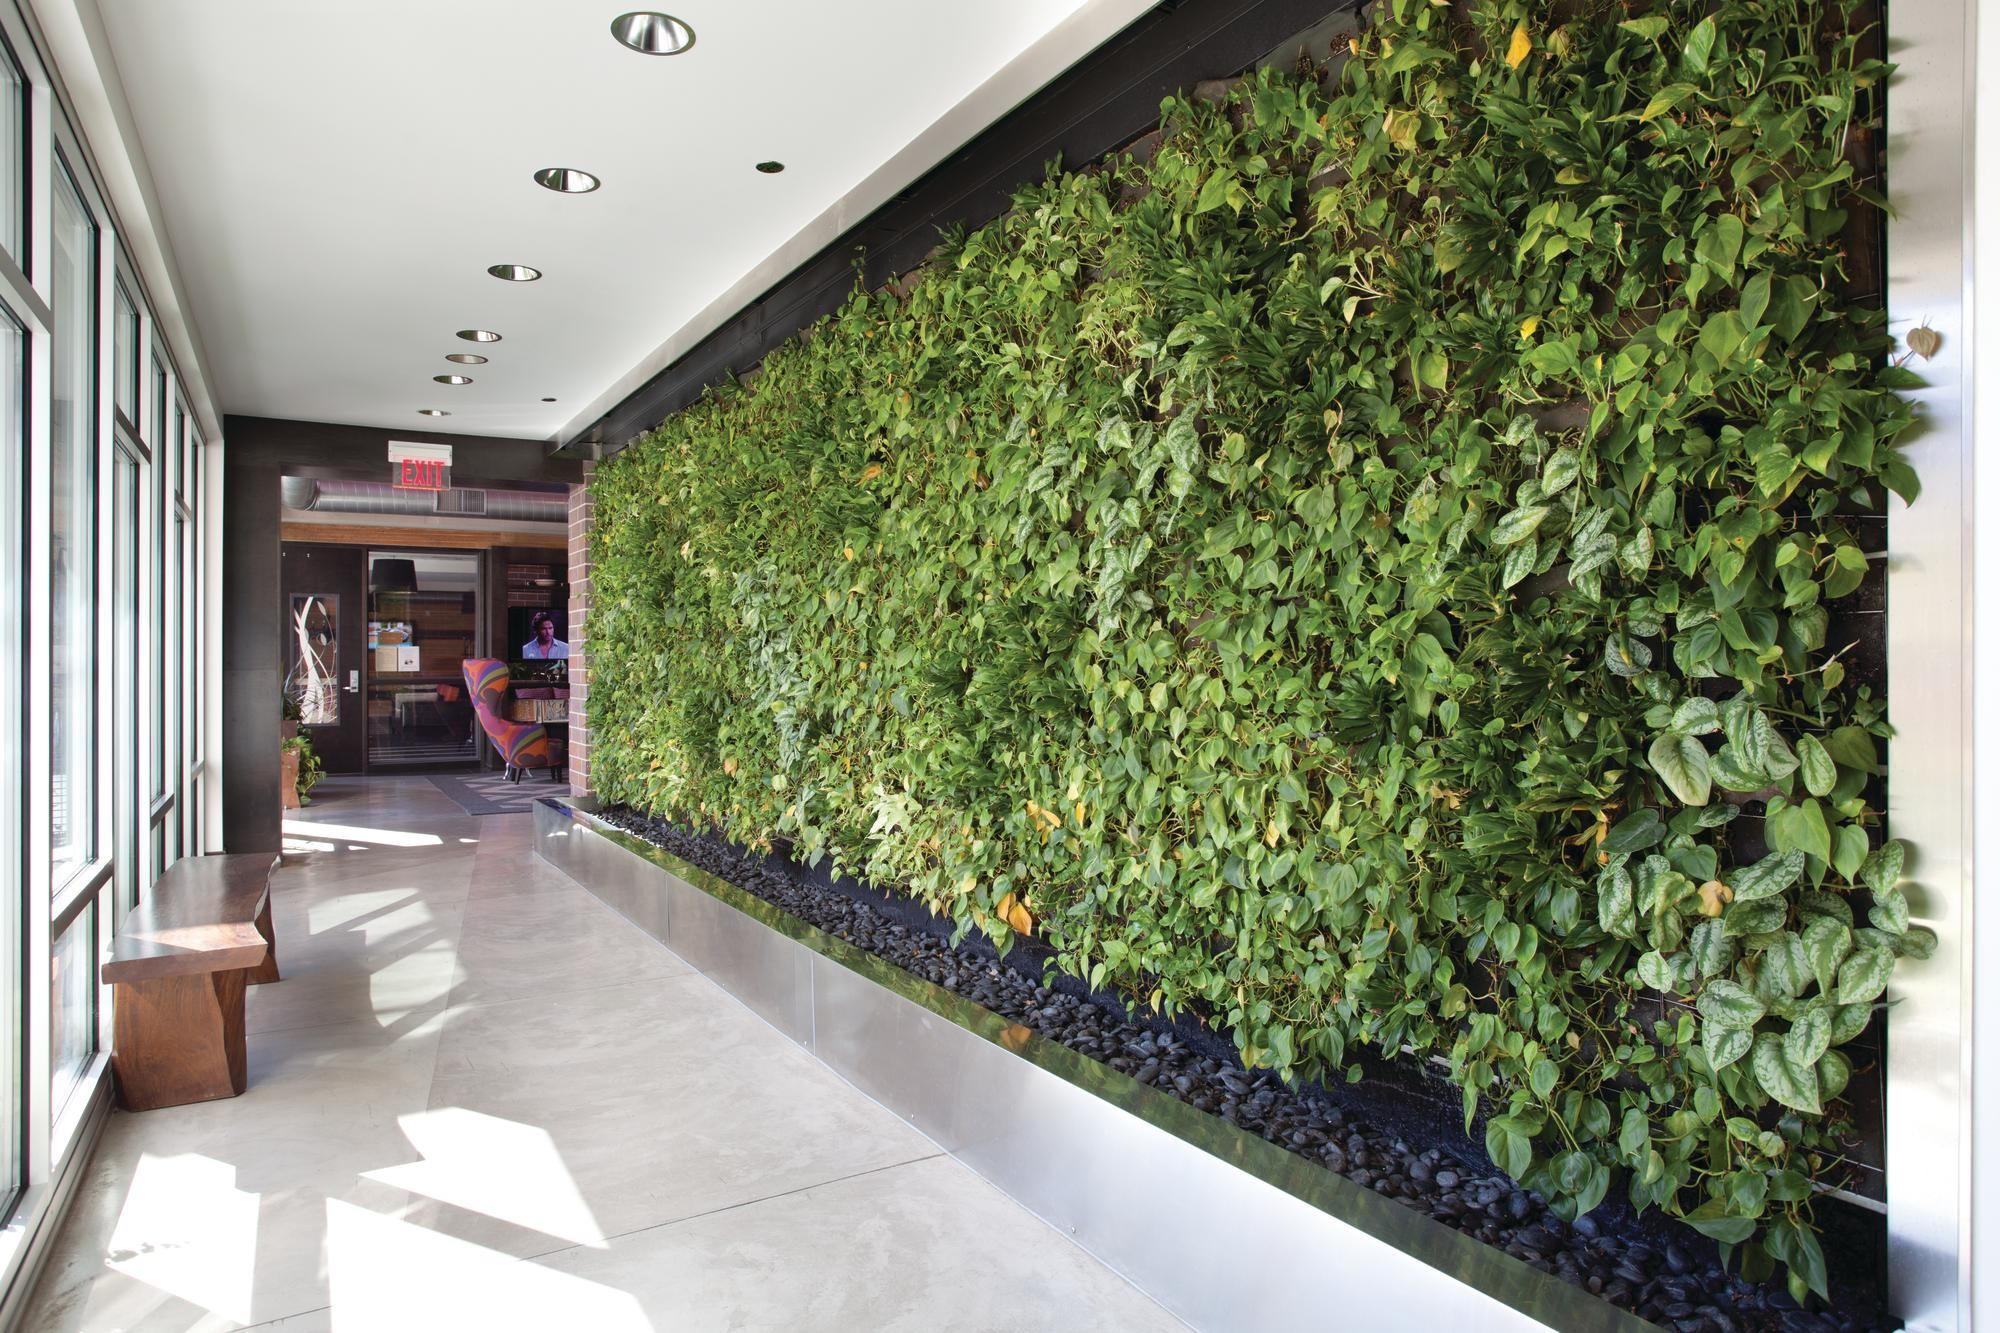 Salon De Jardin Modulo Green Roof And Wall Market Expected To Grow| Ecobuilding